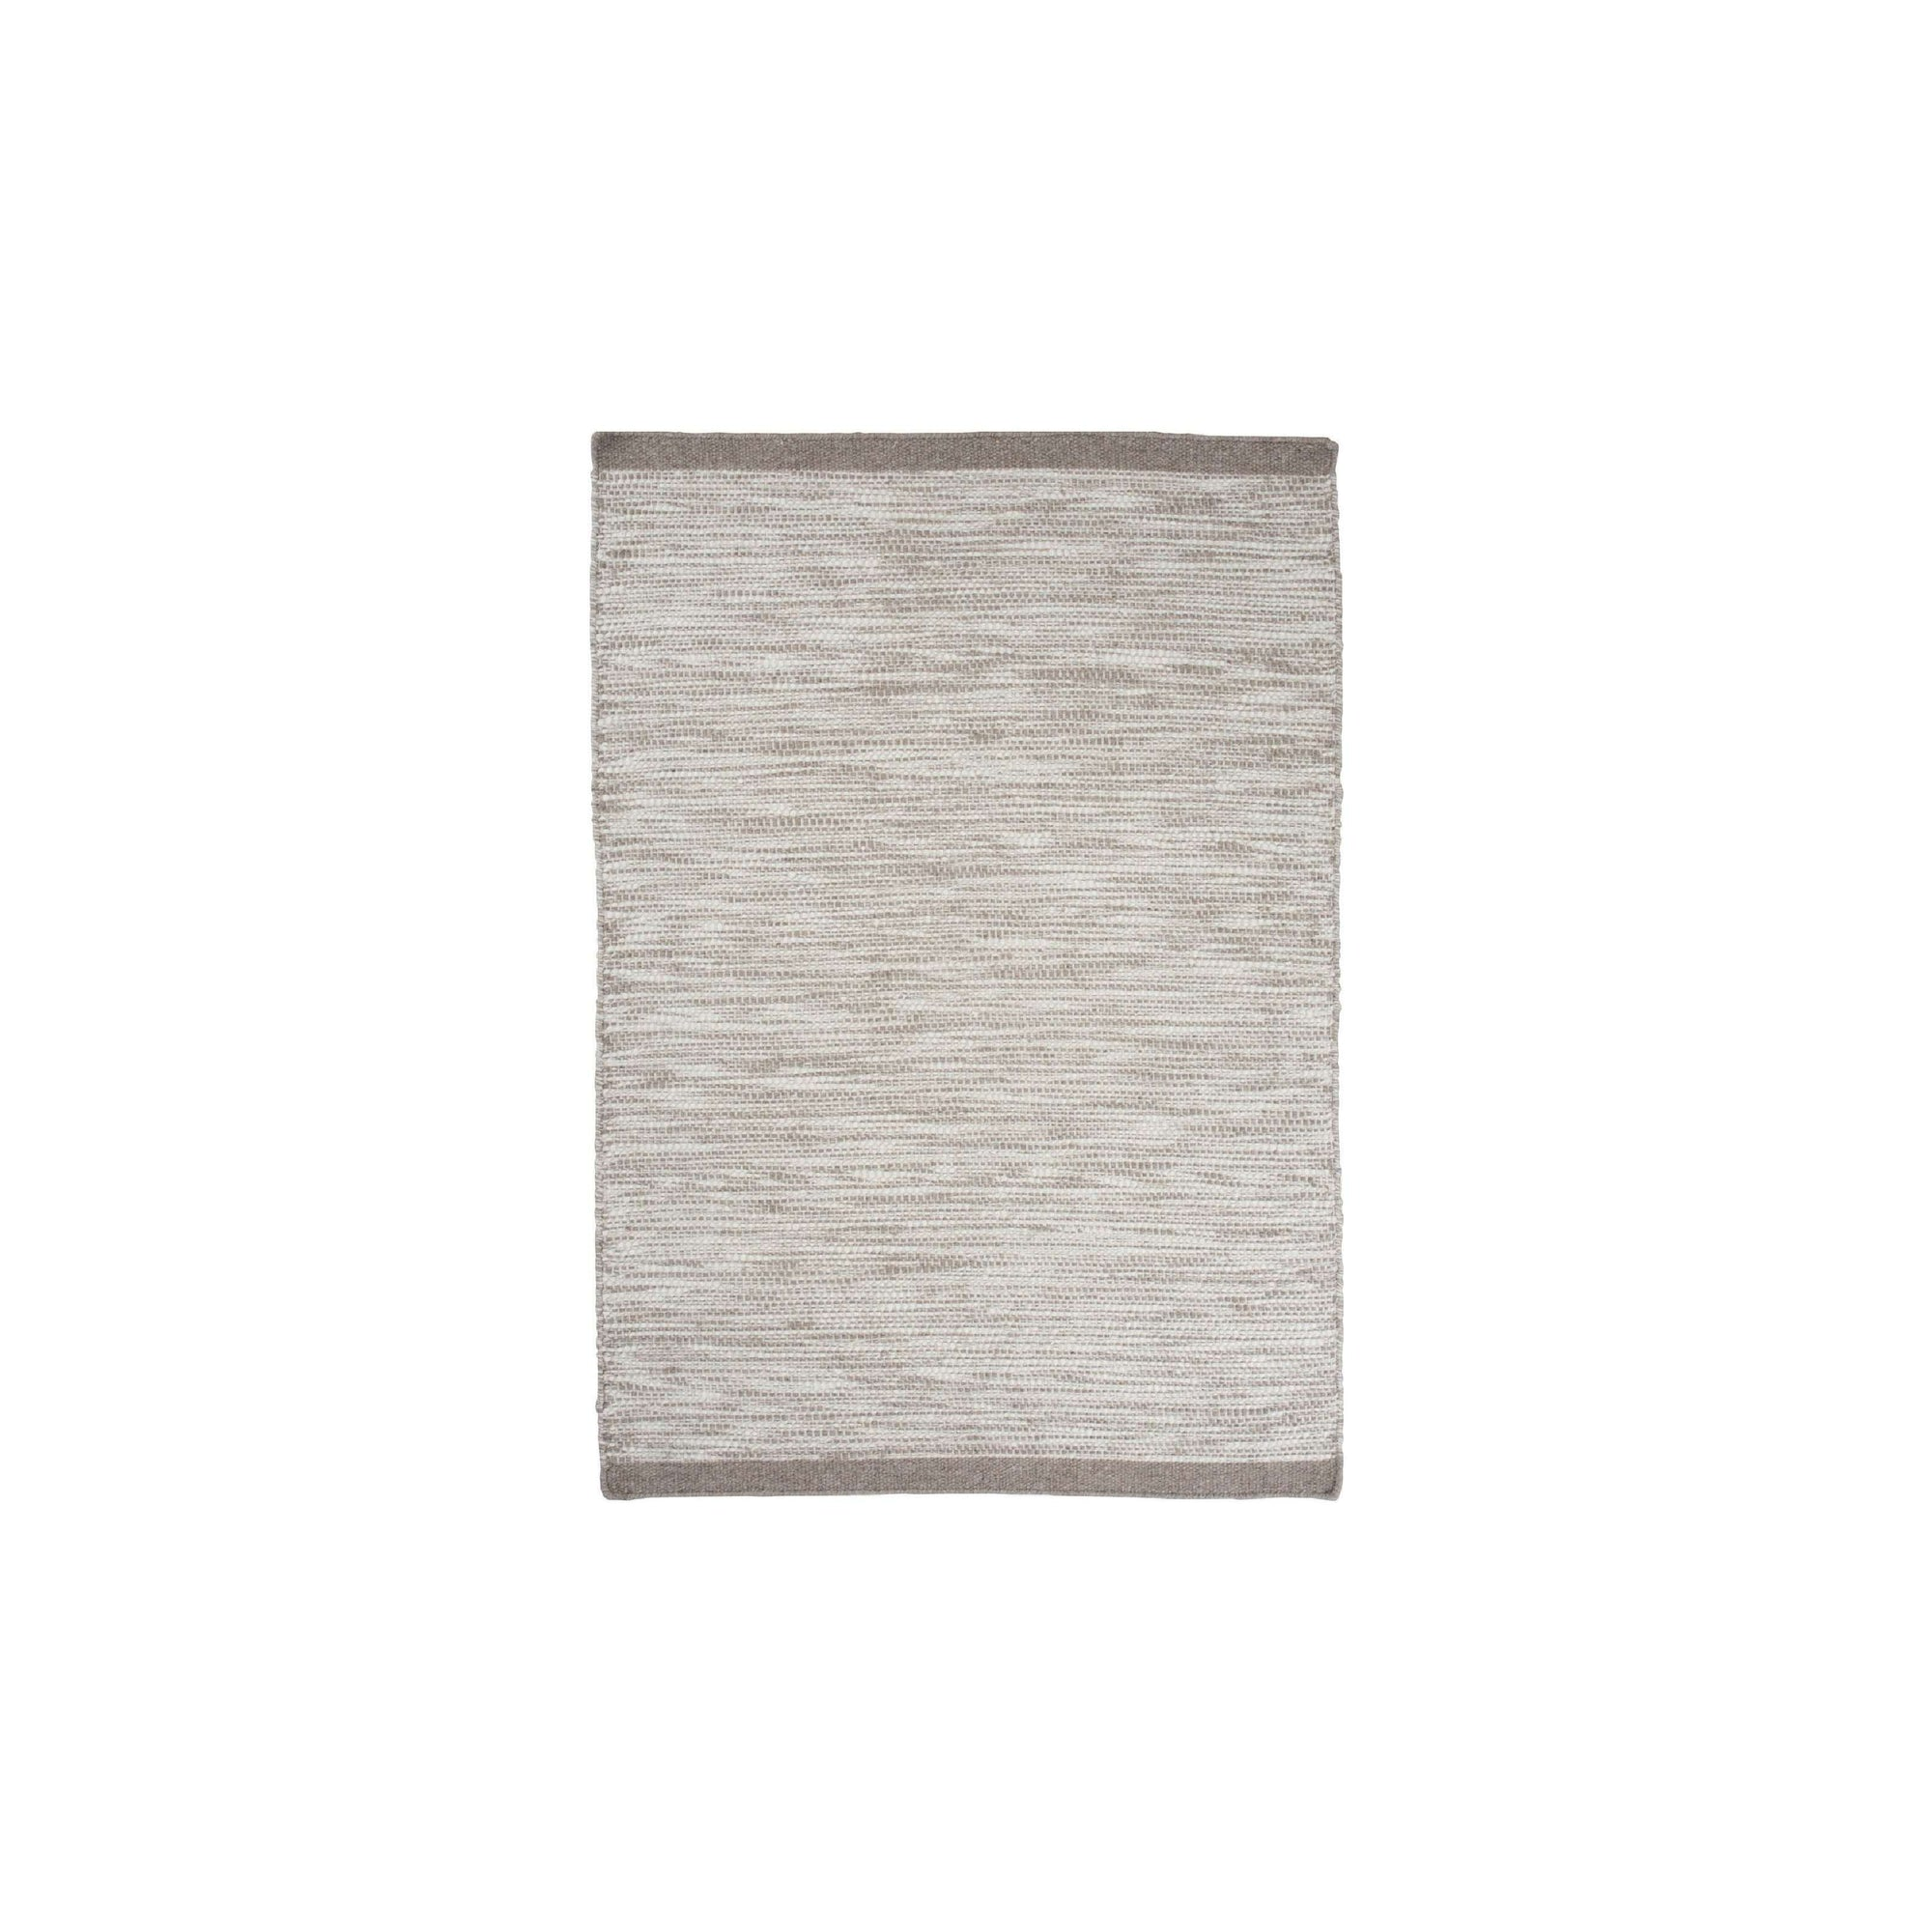 FUGITO 2.4m Rug In Silver Colour